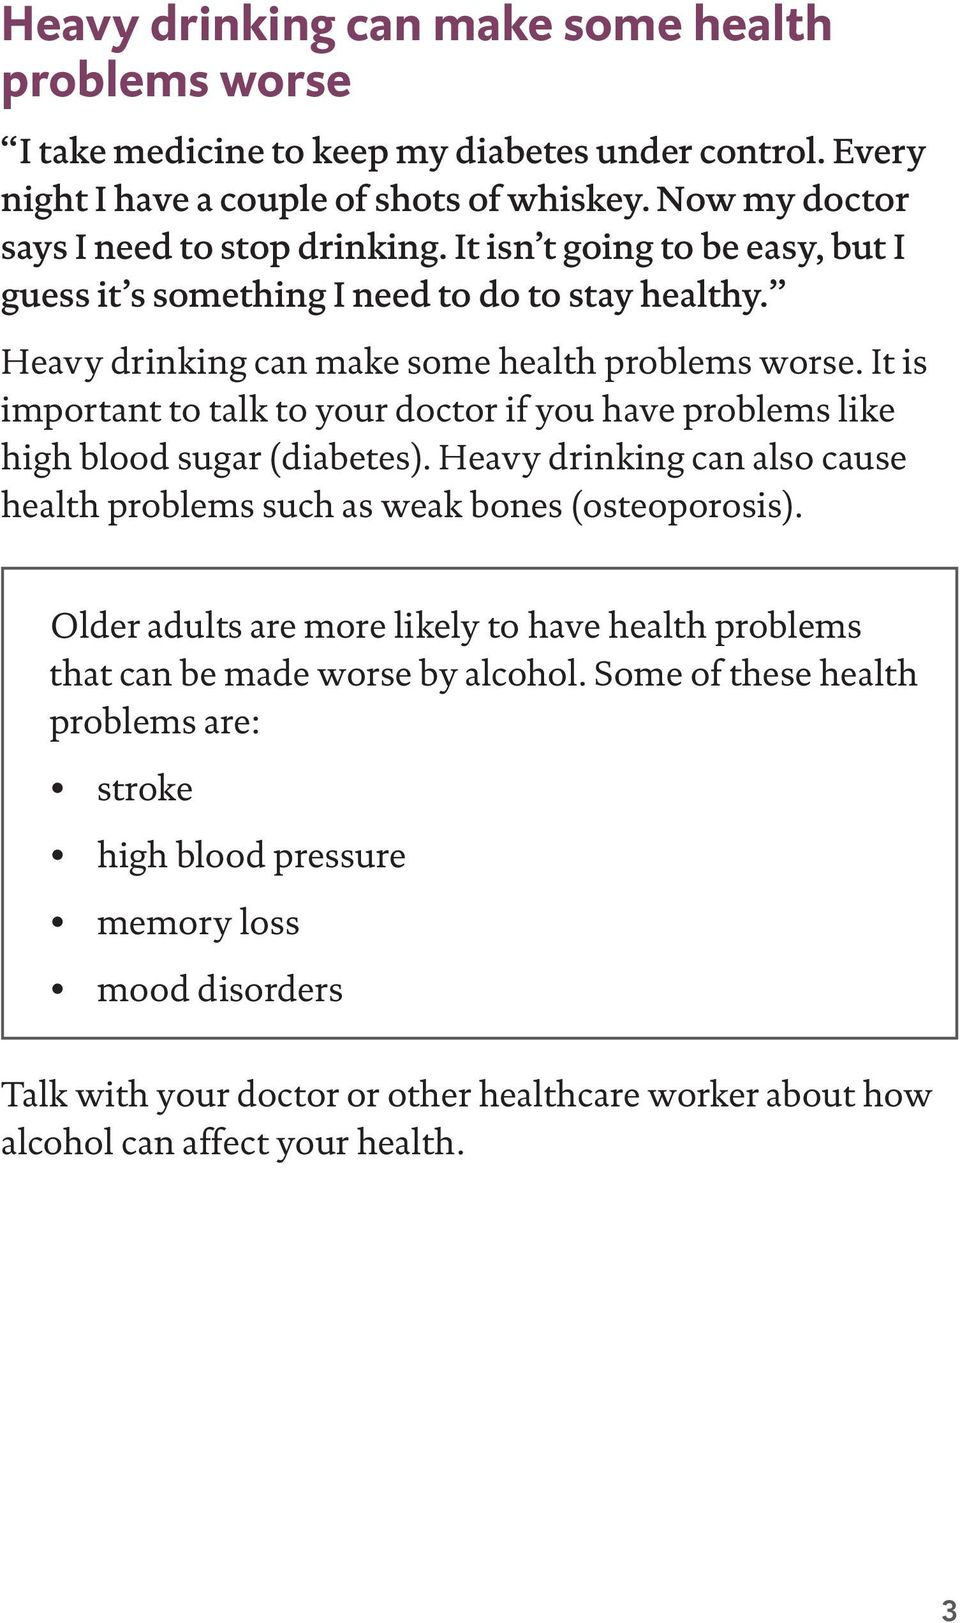 It is important to talk to your doctor if you have problems like high blood sugar (diabetes). Heavy drinking can also cause health problems such as weak bones (osteoporosis).